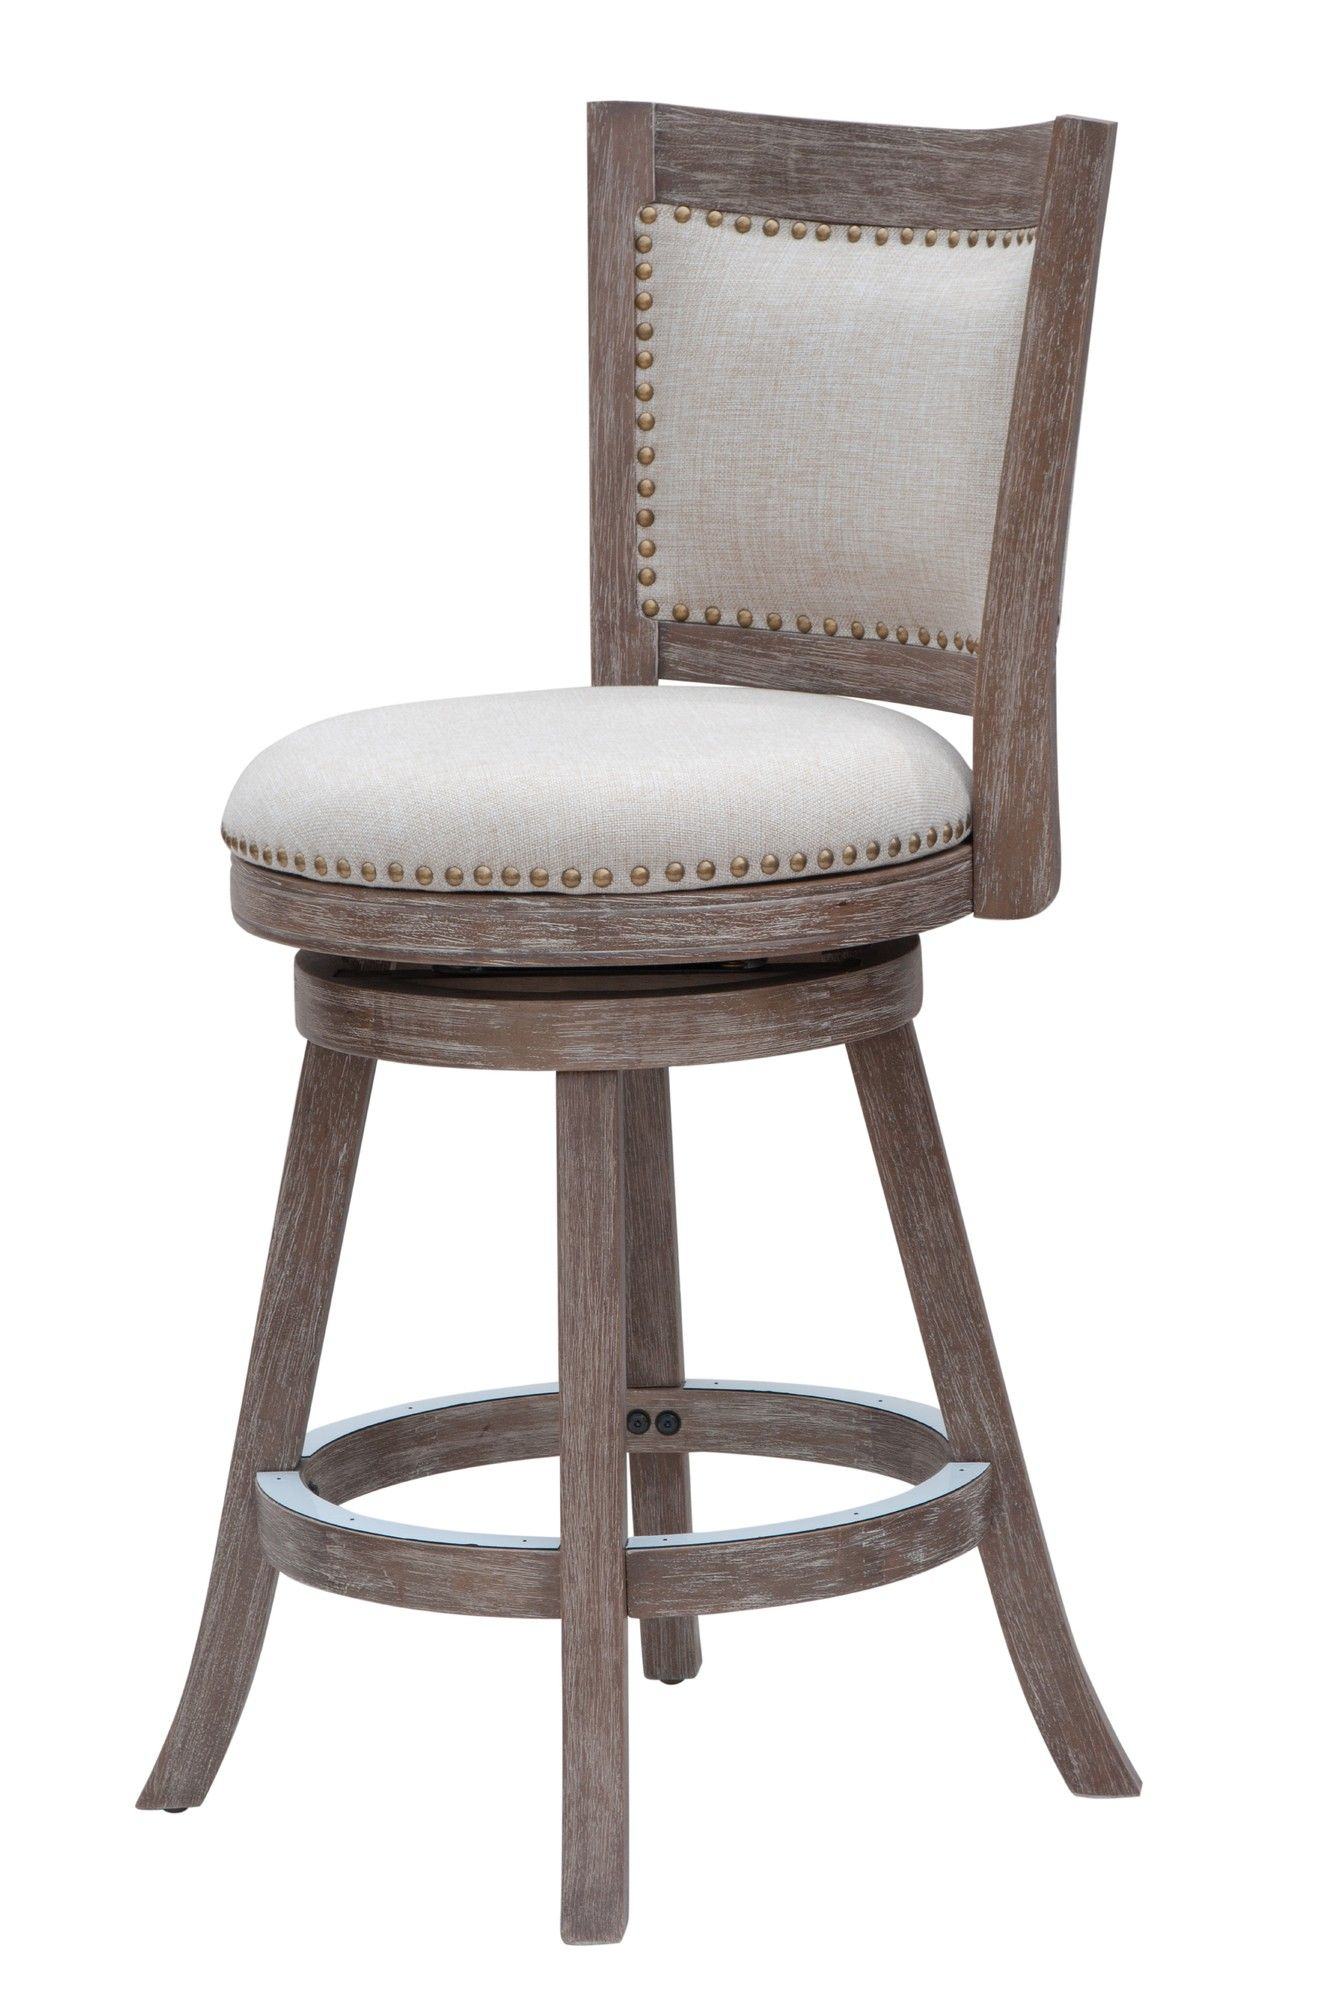 I Like The Details On The Bar Stool Boraam Melrose 24